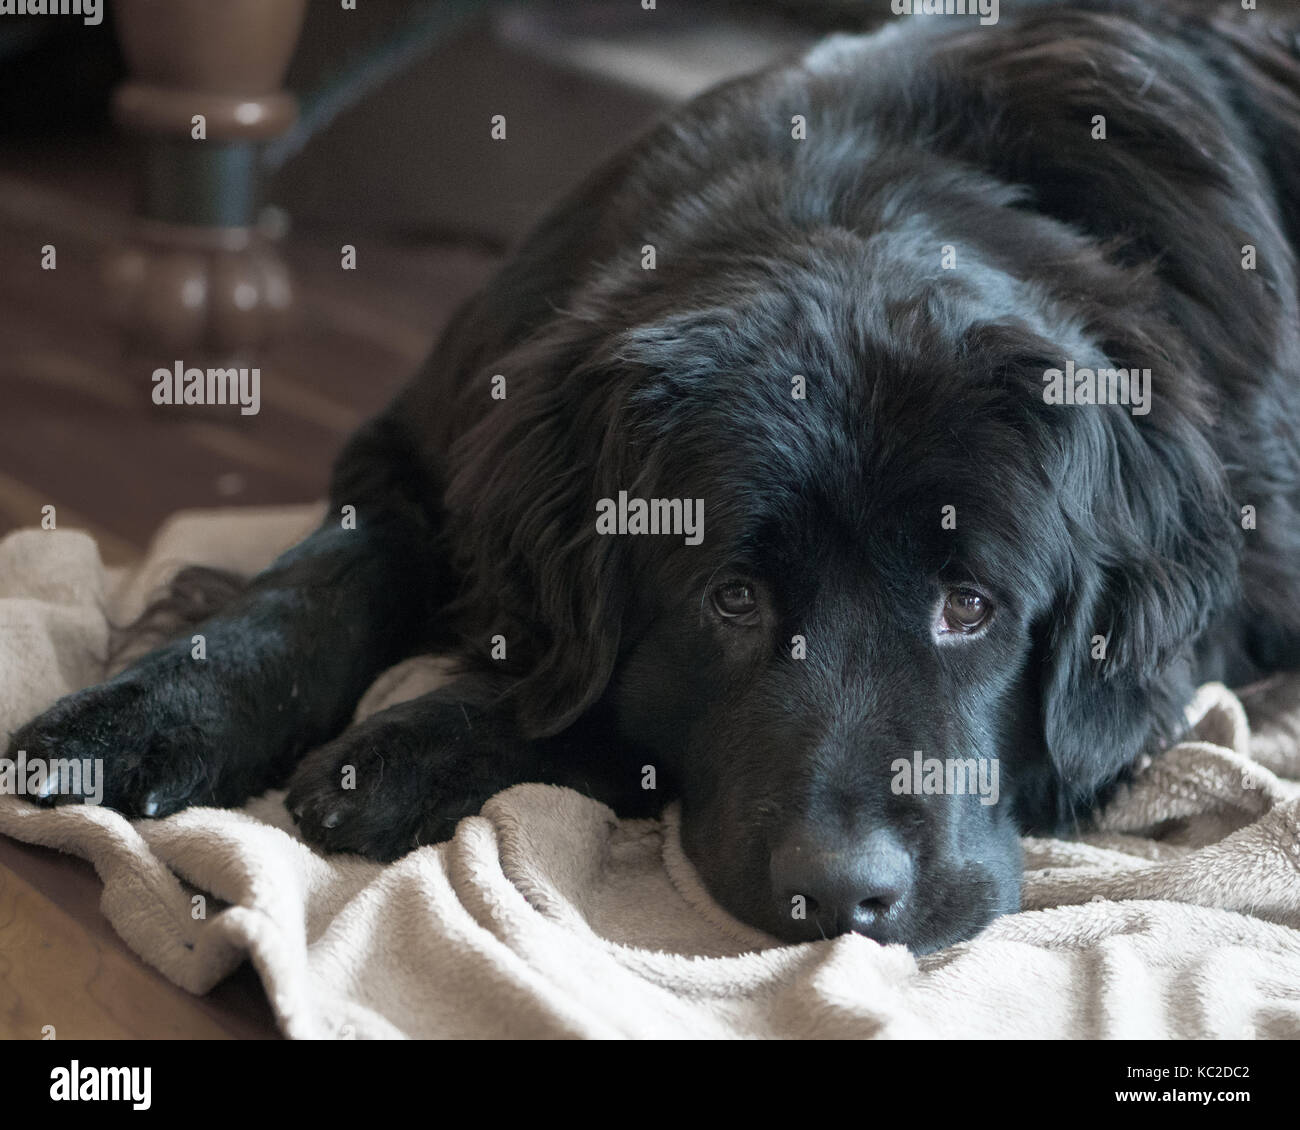 Sweet black newfoundland dog with sad face lying on a blanket with muted colours. - Stock Image